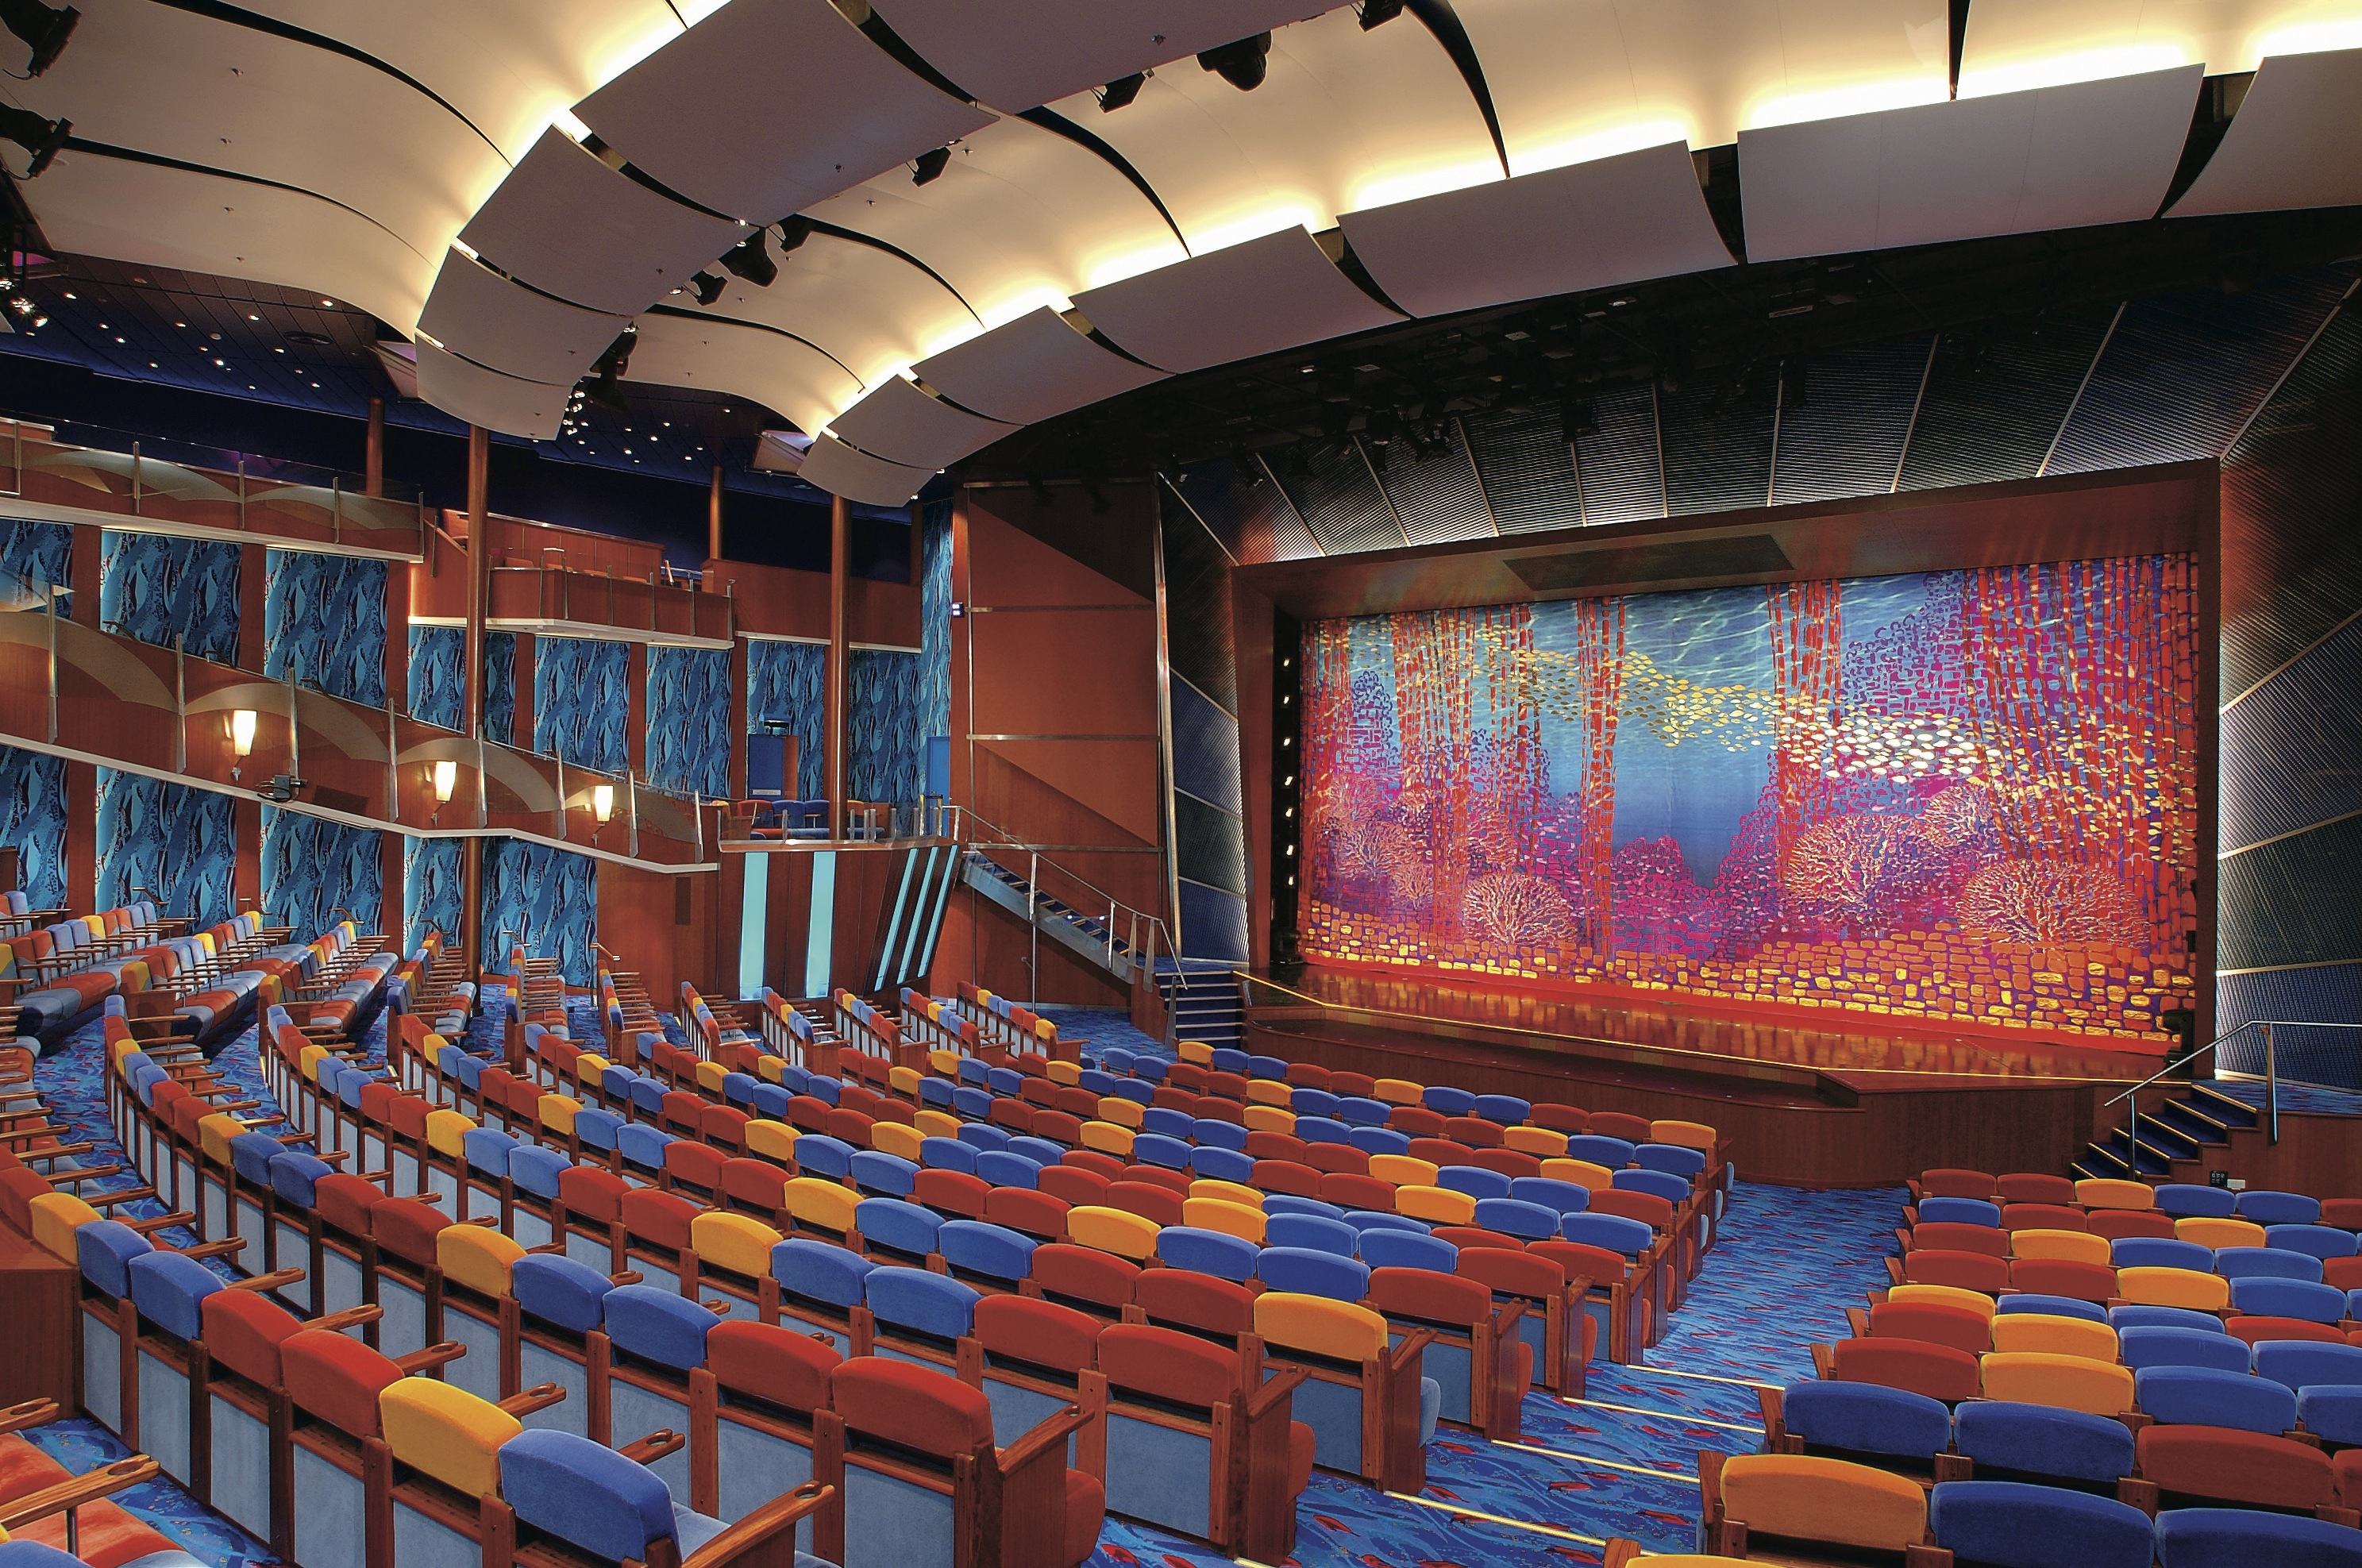 Royal Caribbean International Jewel of the Seas Interior Coral Theater.jpeg